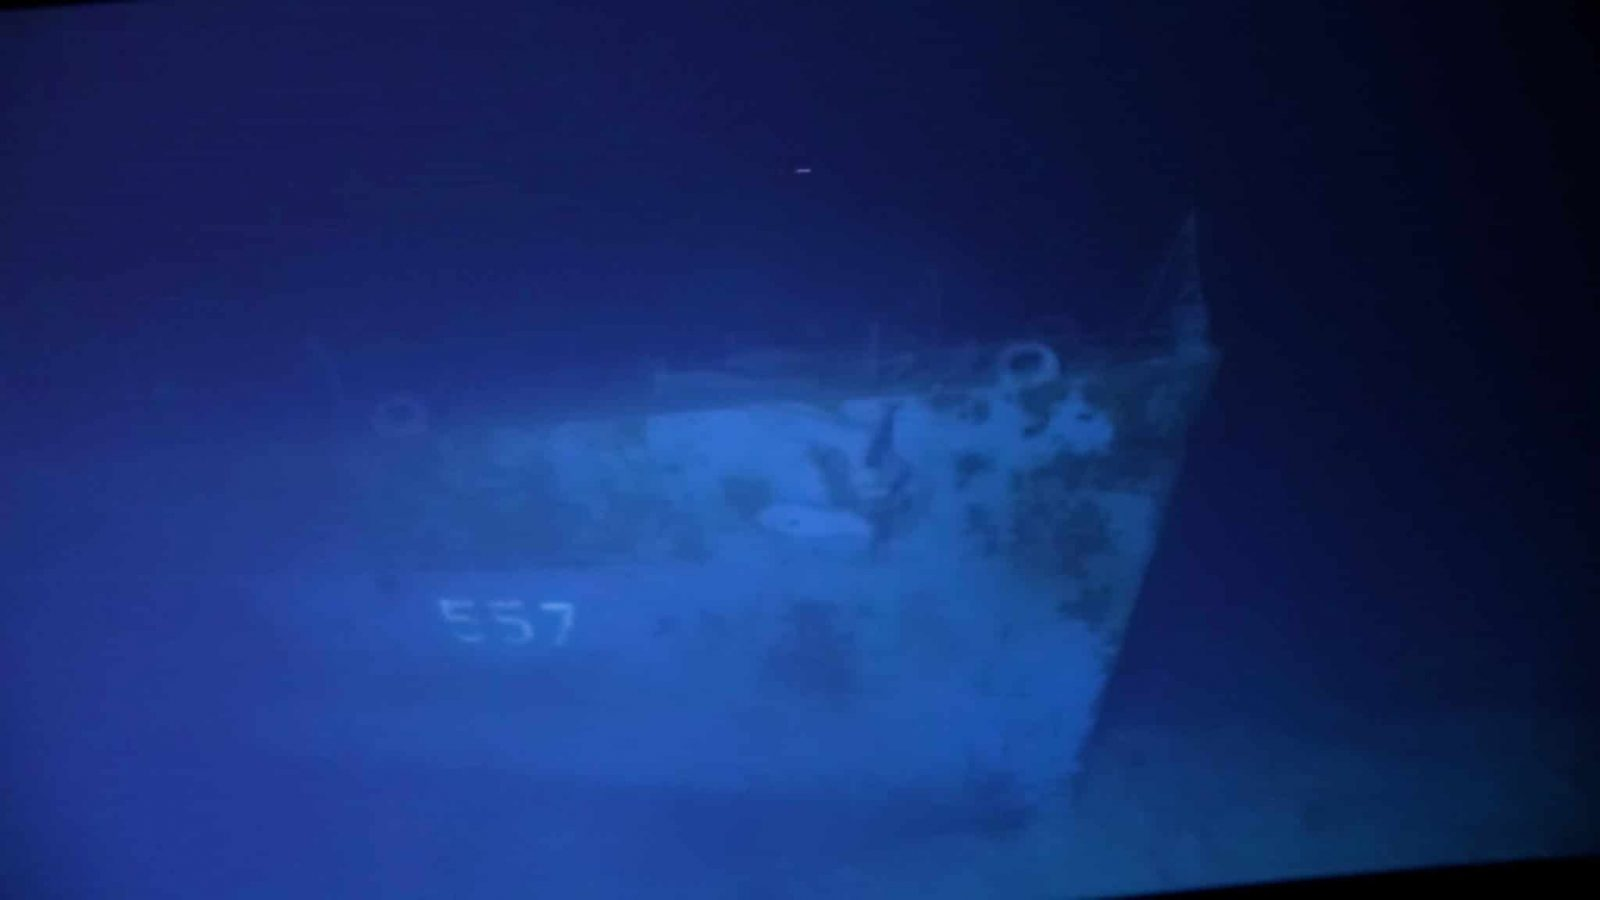 deepest-shipwreck-ever-discovered-identified-as-us.-world-war-2-destroyer